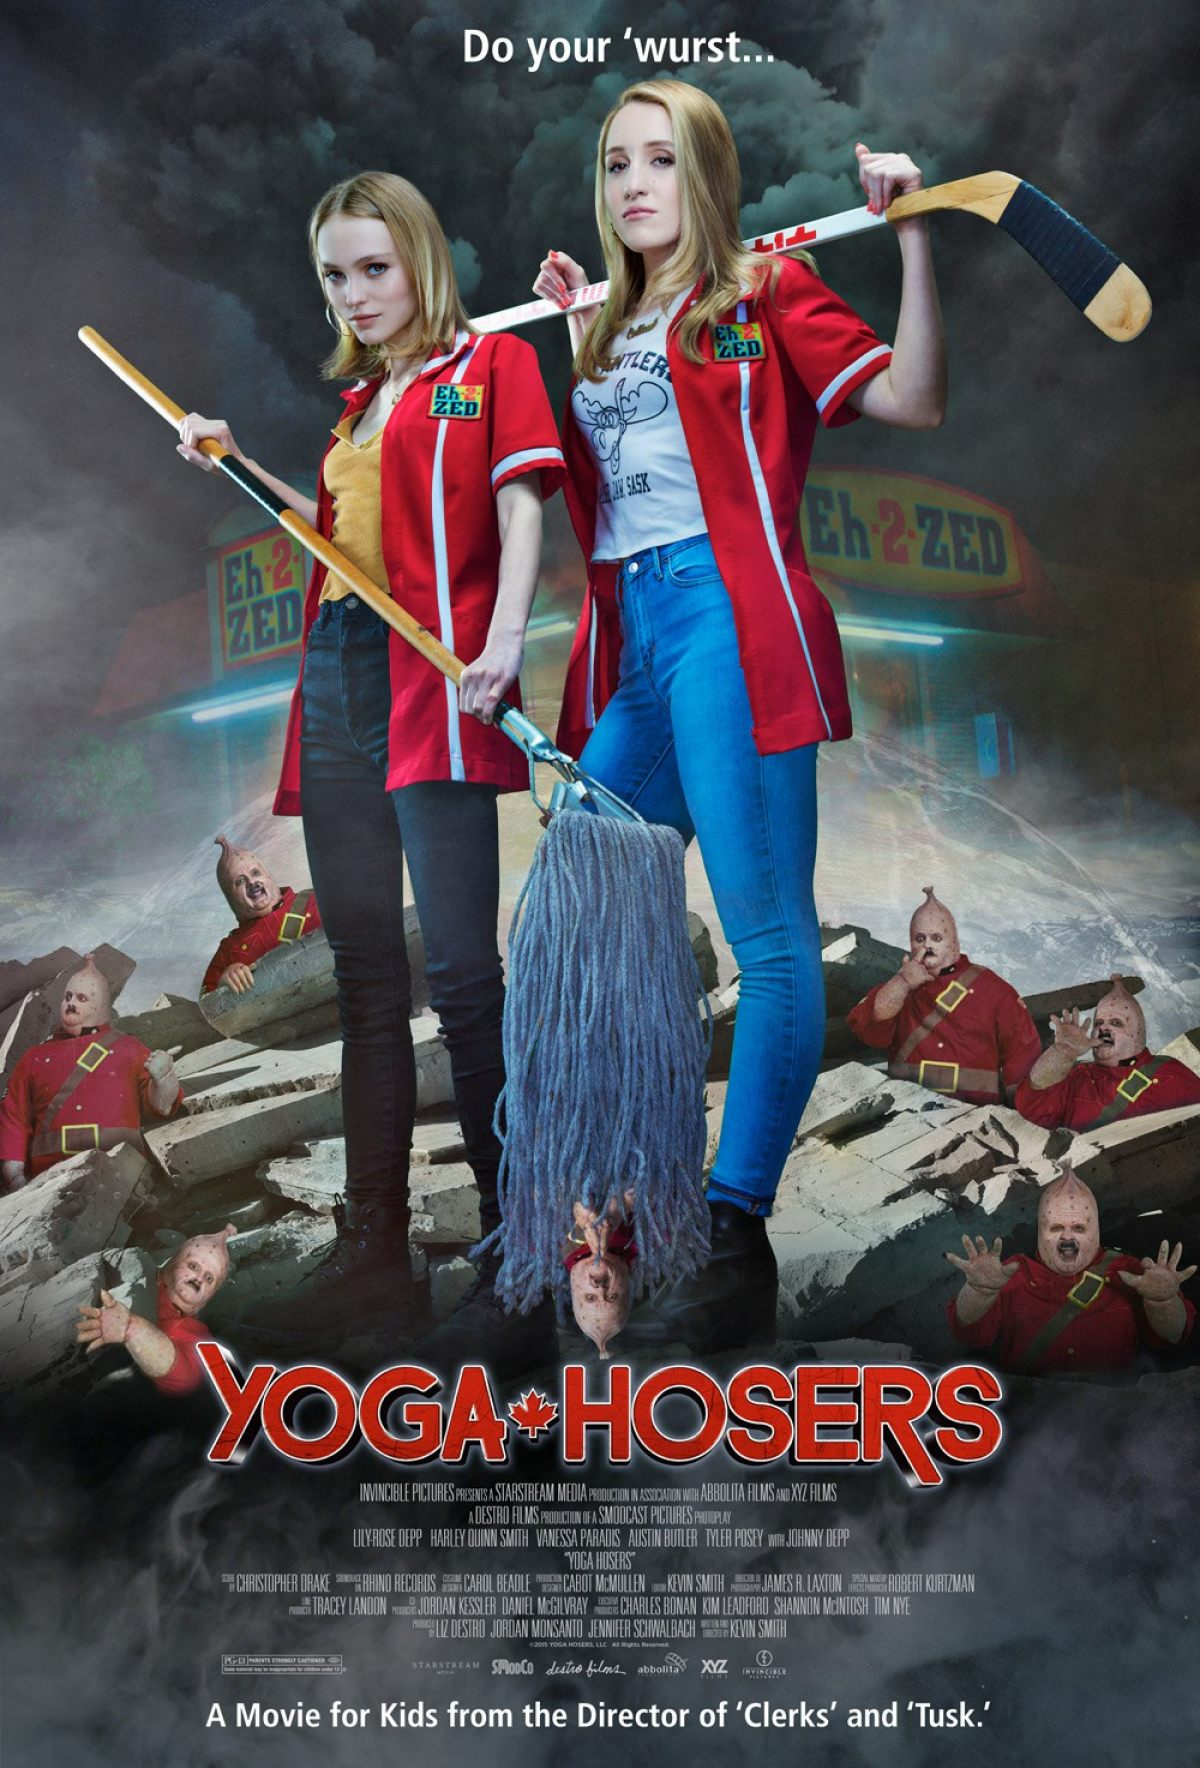 yoga-hosers-poster_1200_1768_81_s